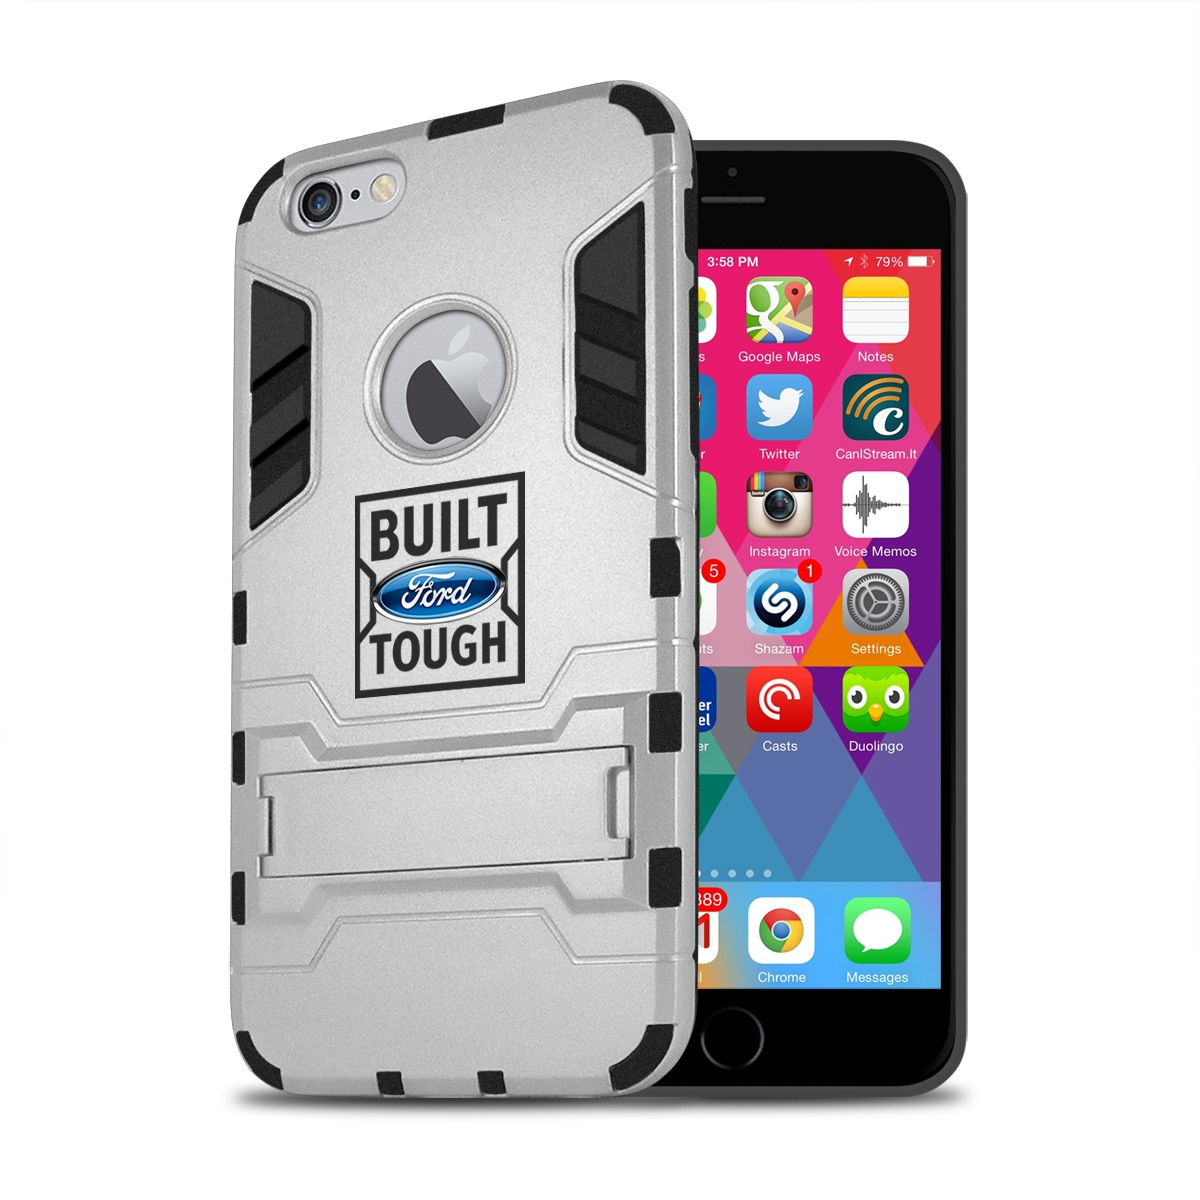 Ford Built Ford Tough iPhone 6 6s Shockproof TPU ABS Hybrid Silver Phone Case